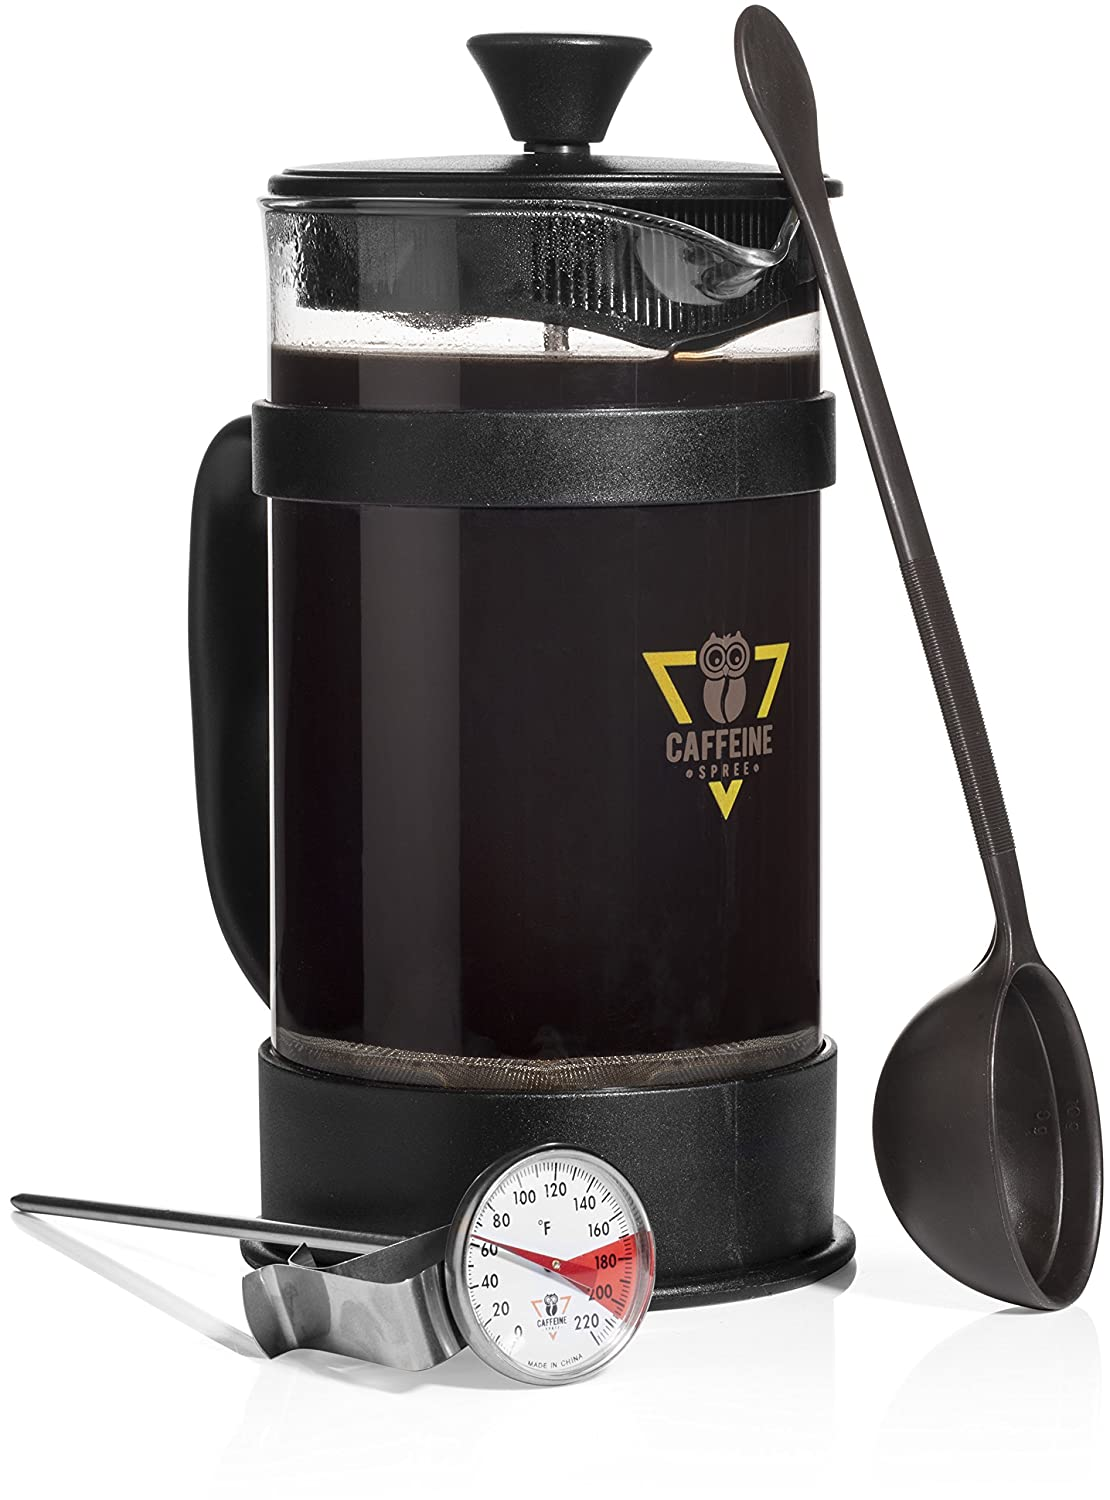 Portable French Press Coffee Maker With Tumbler Mug For Travel. Brew Perfect Coffee With Our Mini French Press Plunger 11.8 Oz . Great for Camping, Backpacking, Commuters and Your Office